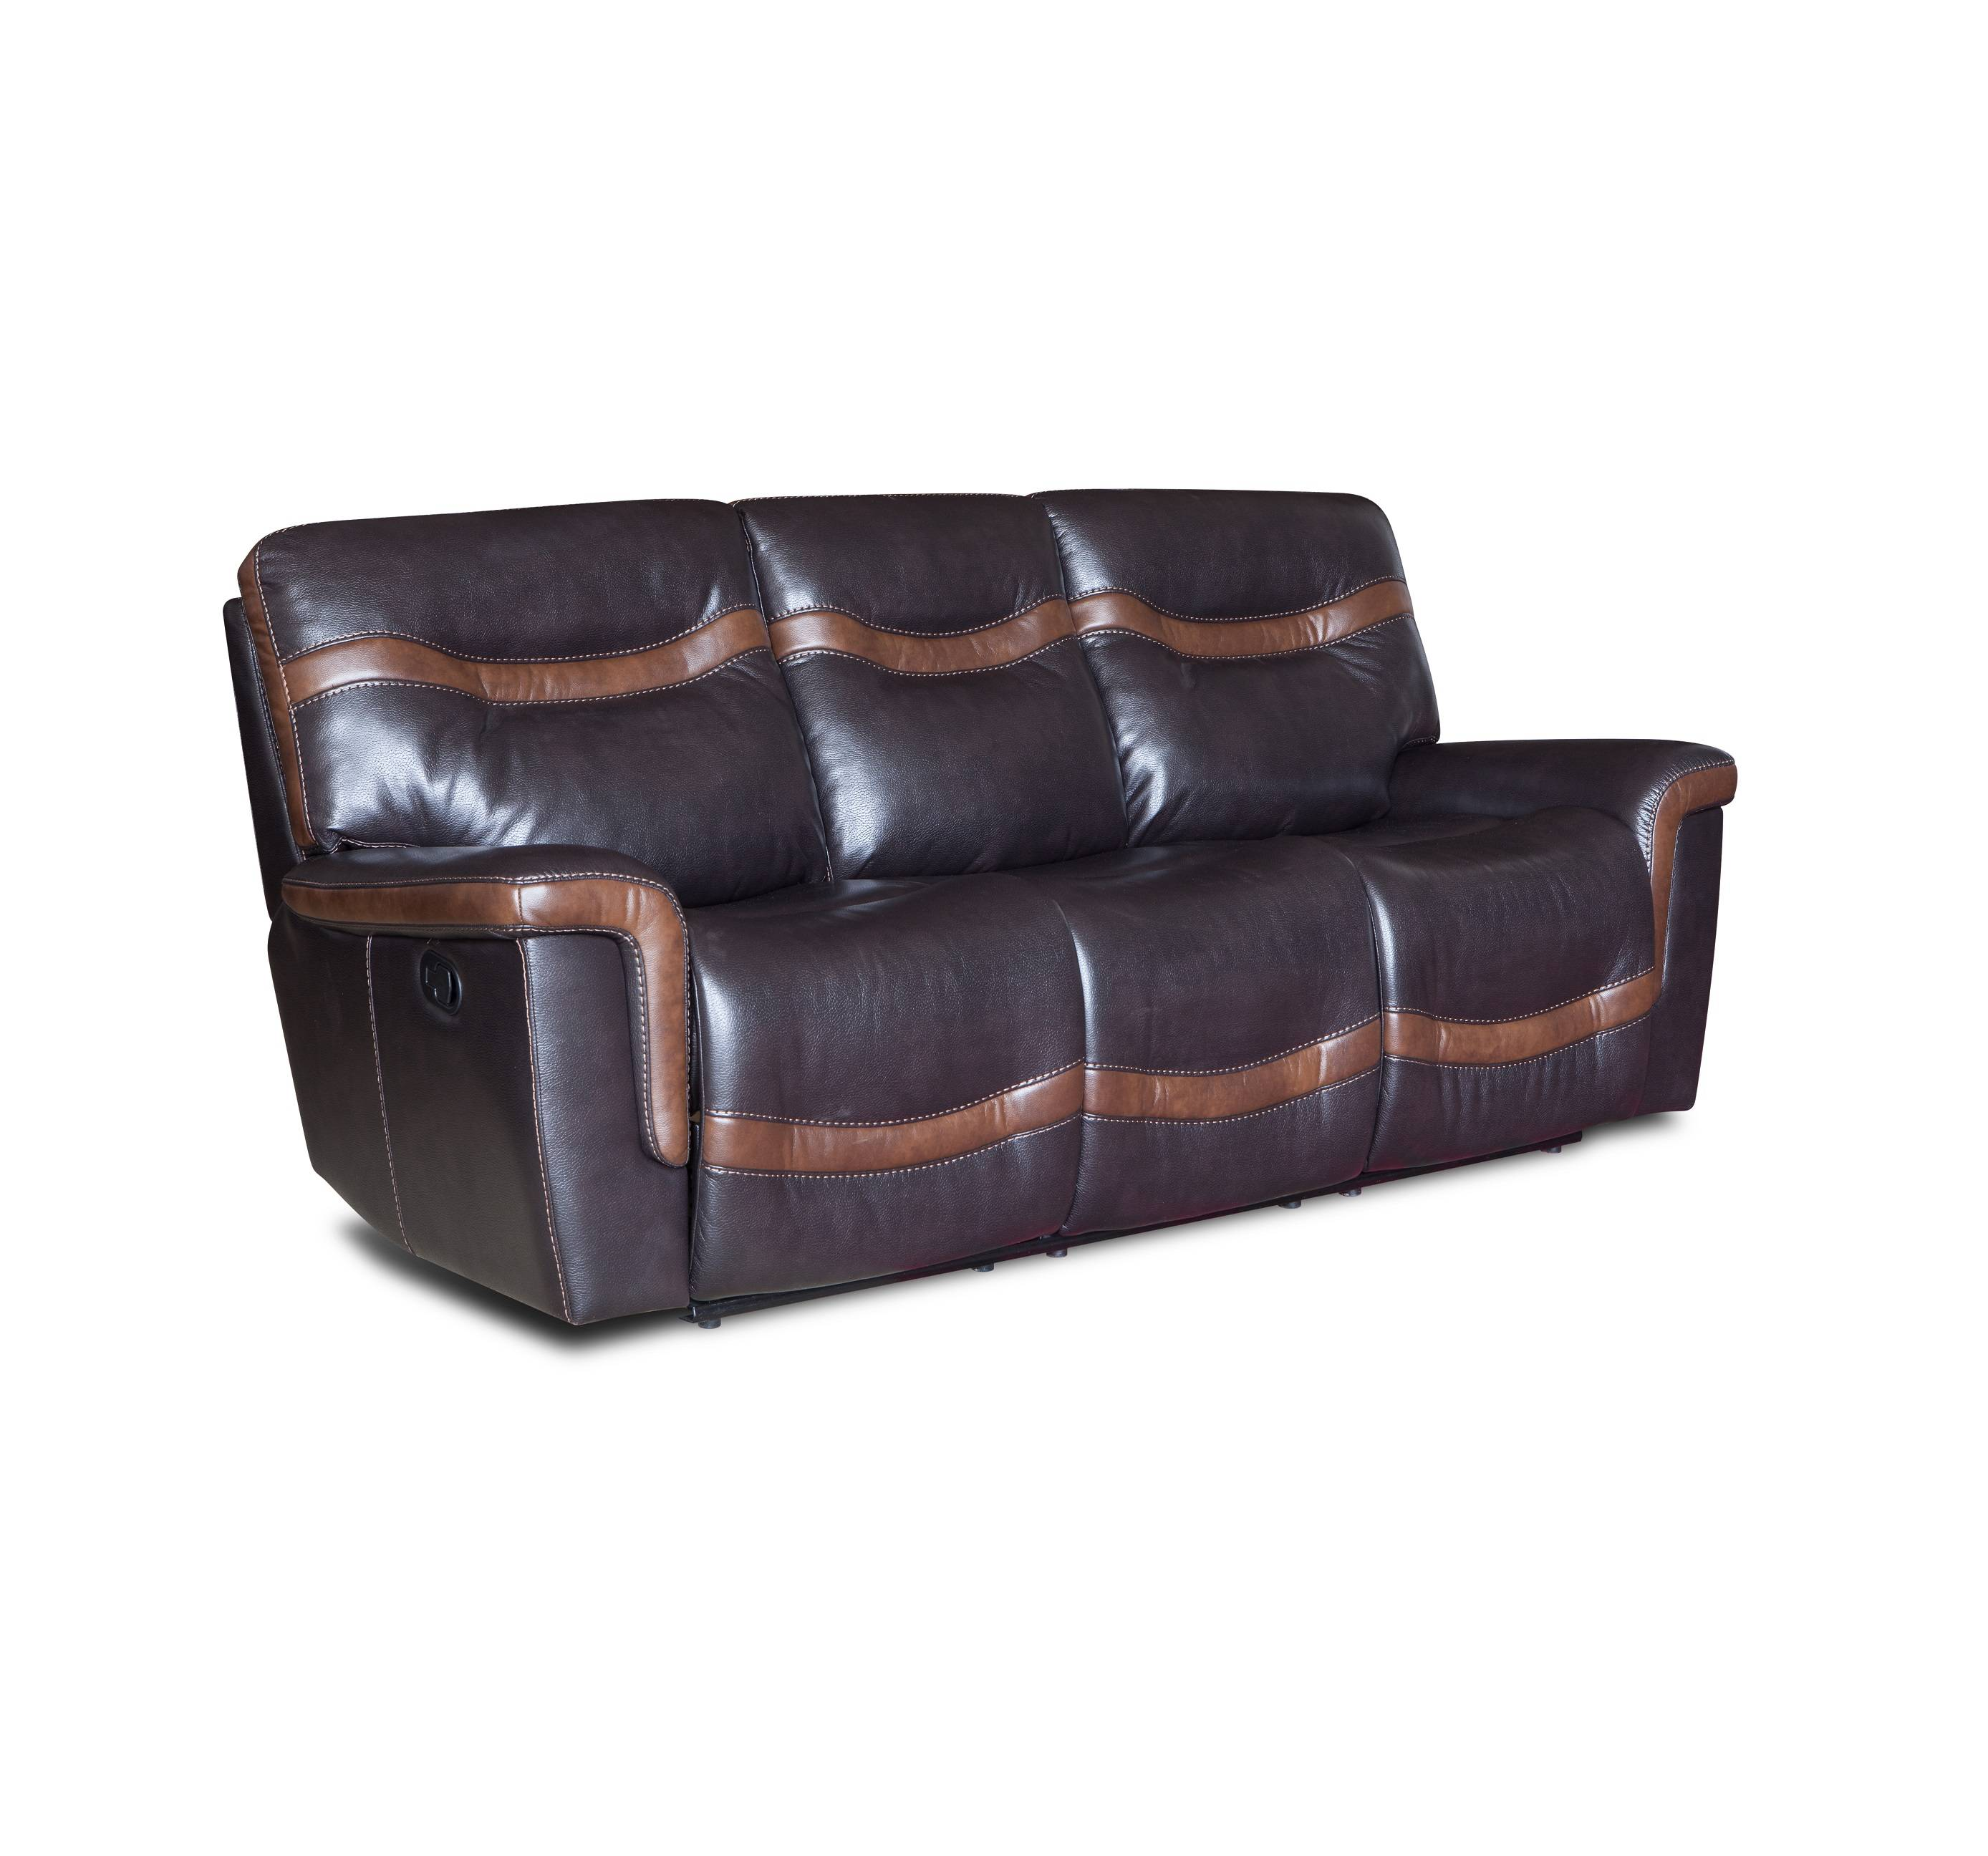 Stitching style sofa set 3+2+1 leather electric recliner sofa